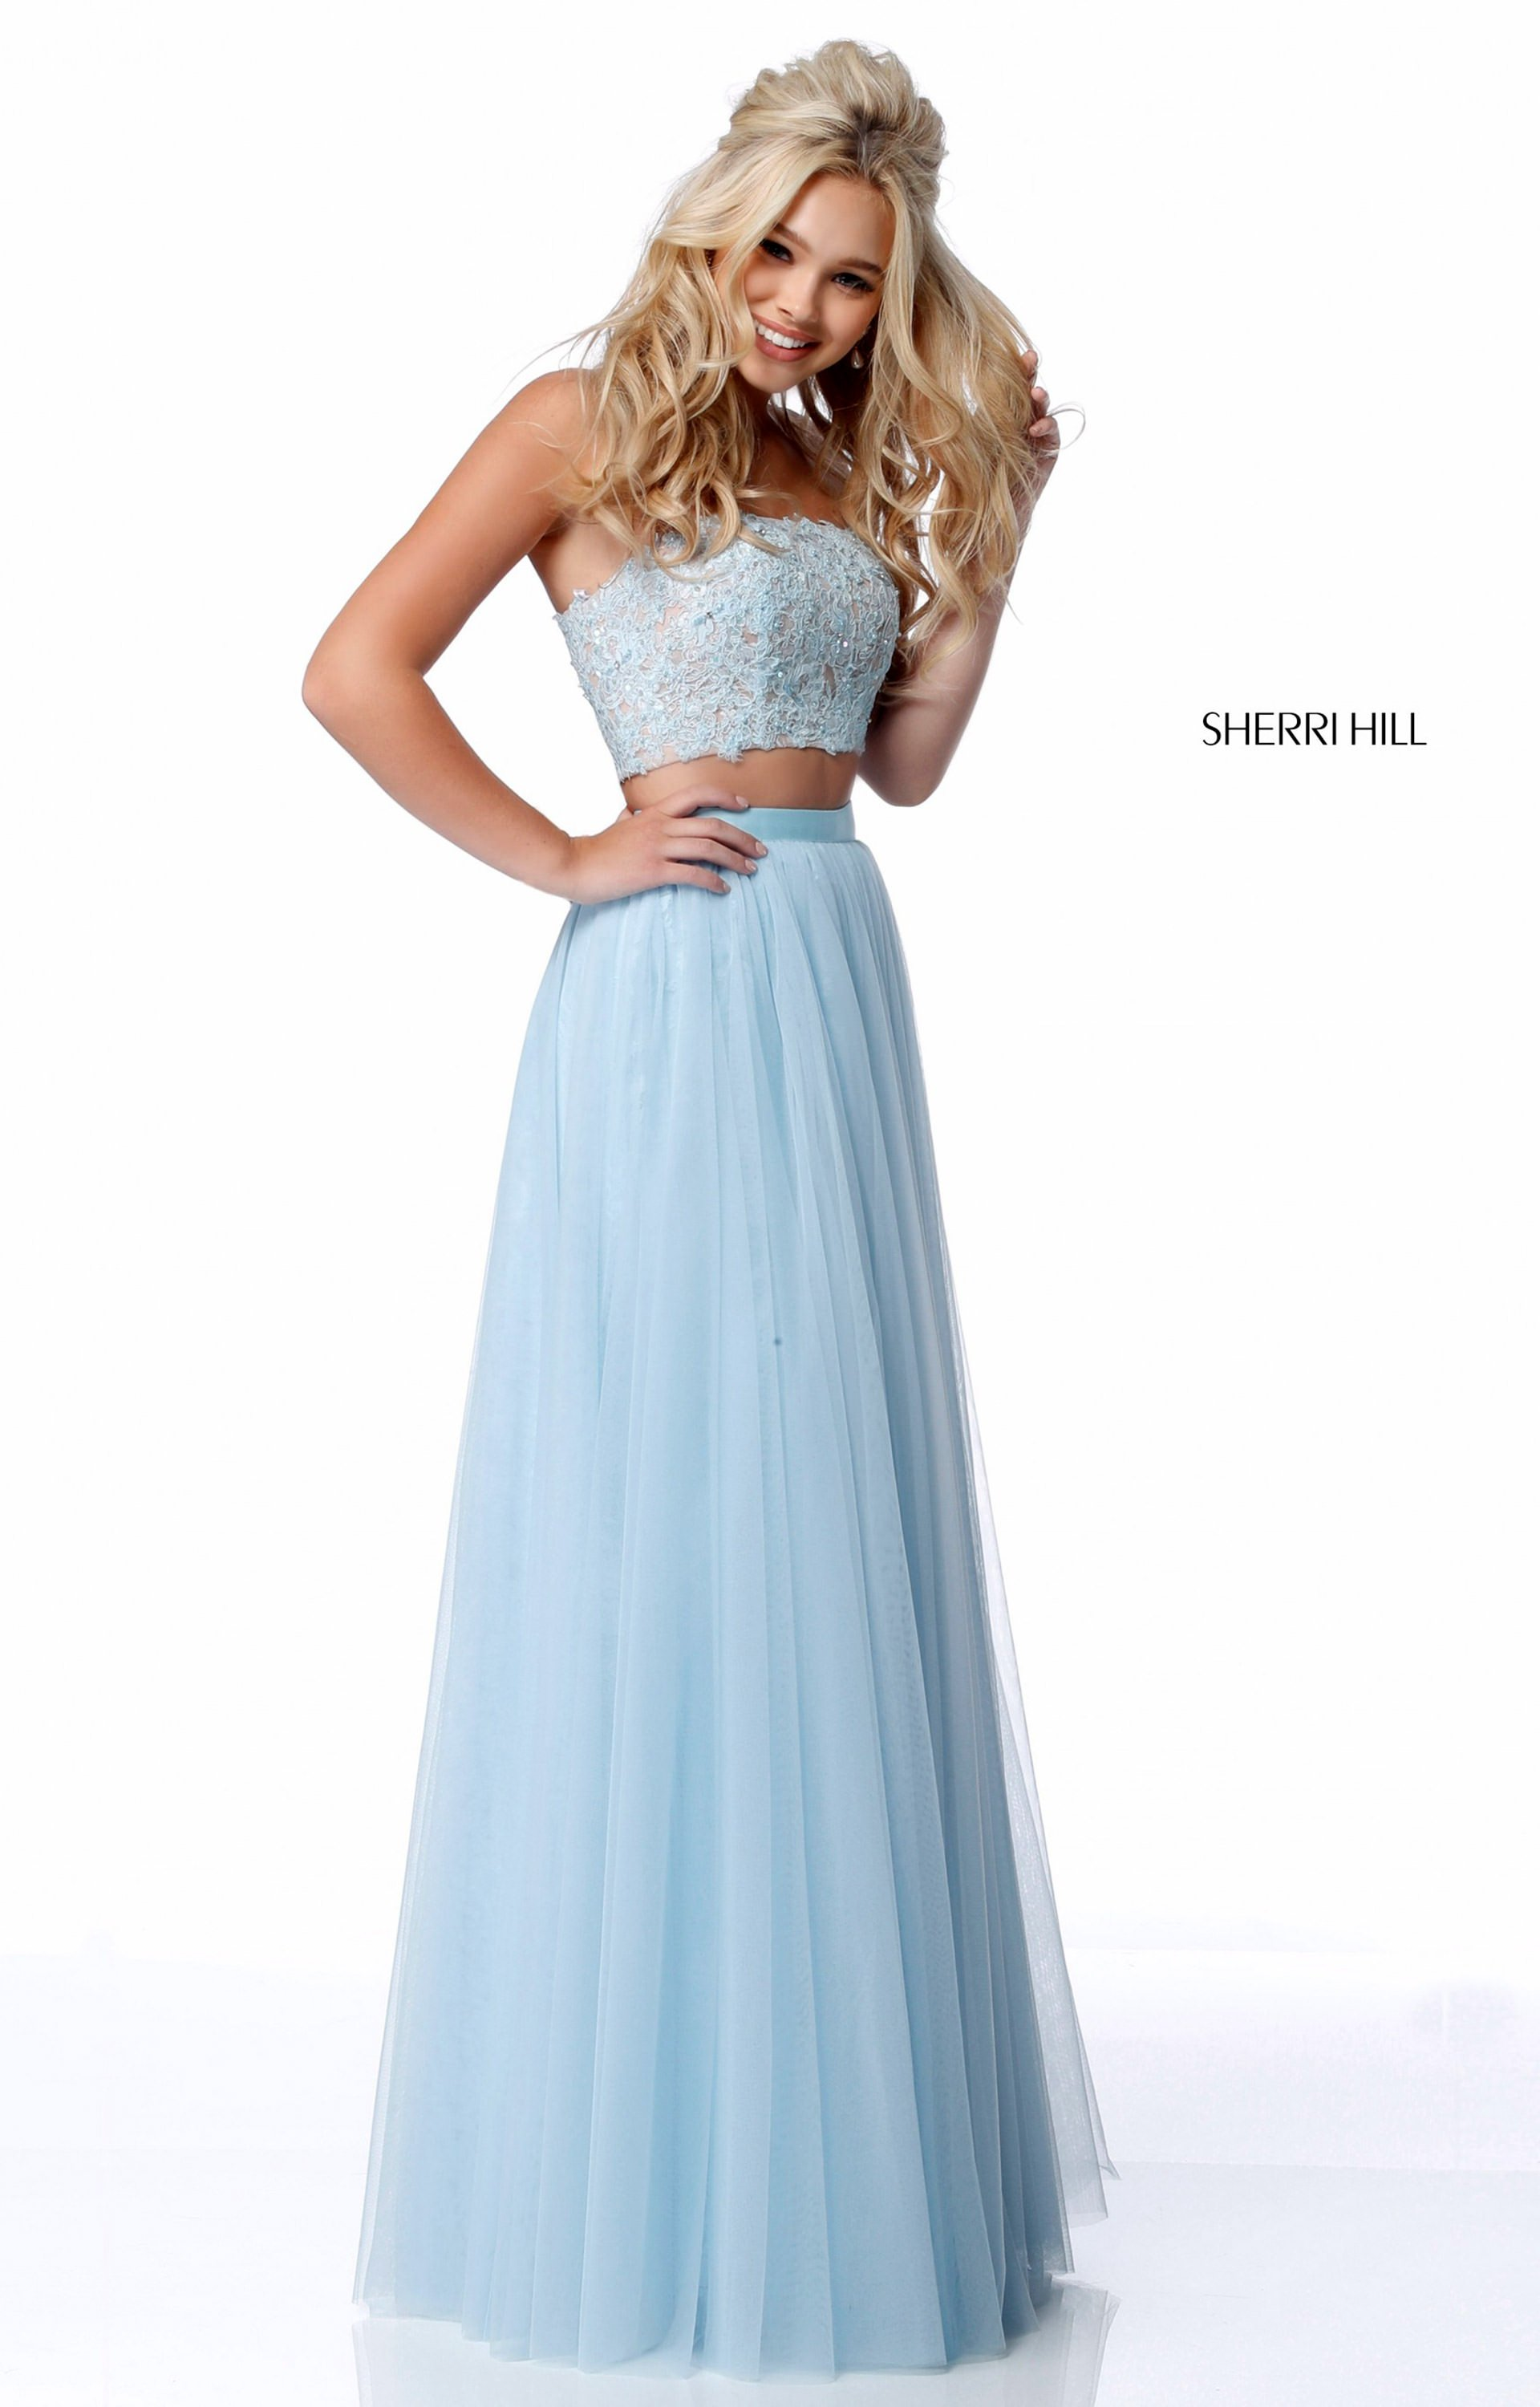 Sherri Hill 51922 - Strapless 2 Piece A-Line Tulle Prom Dress